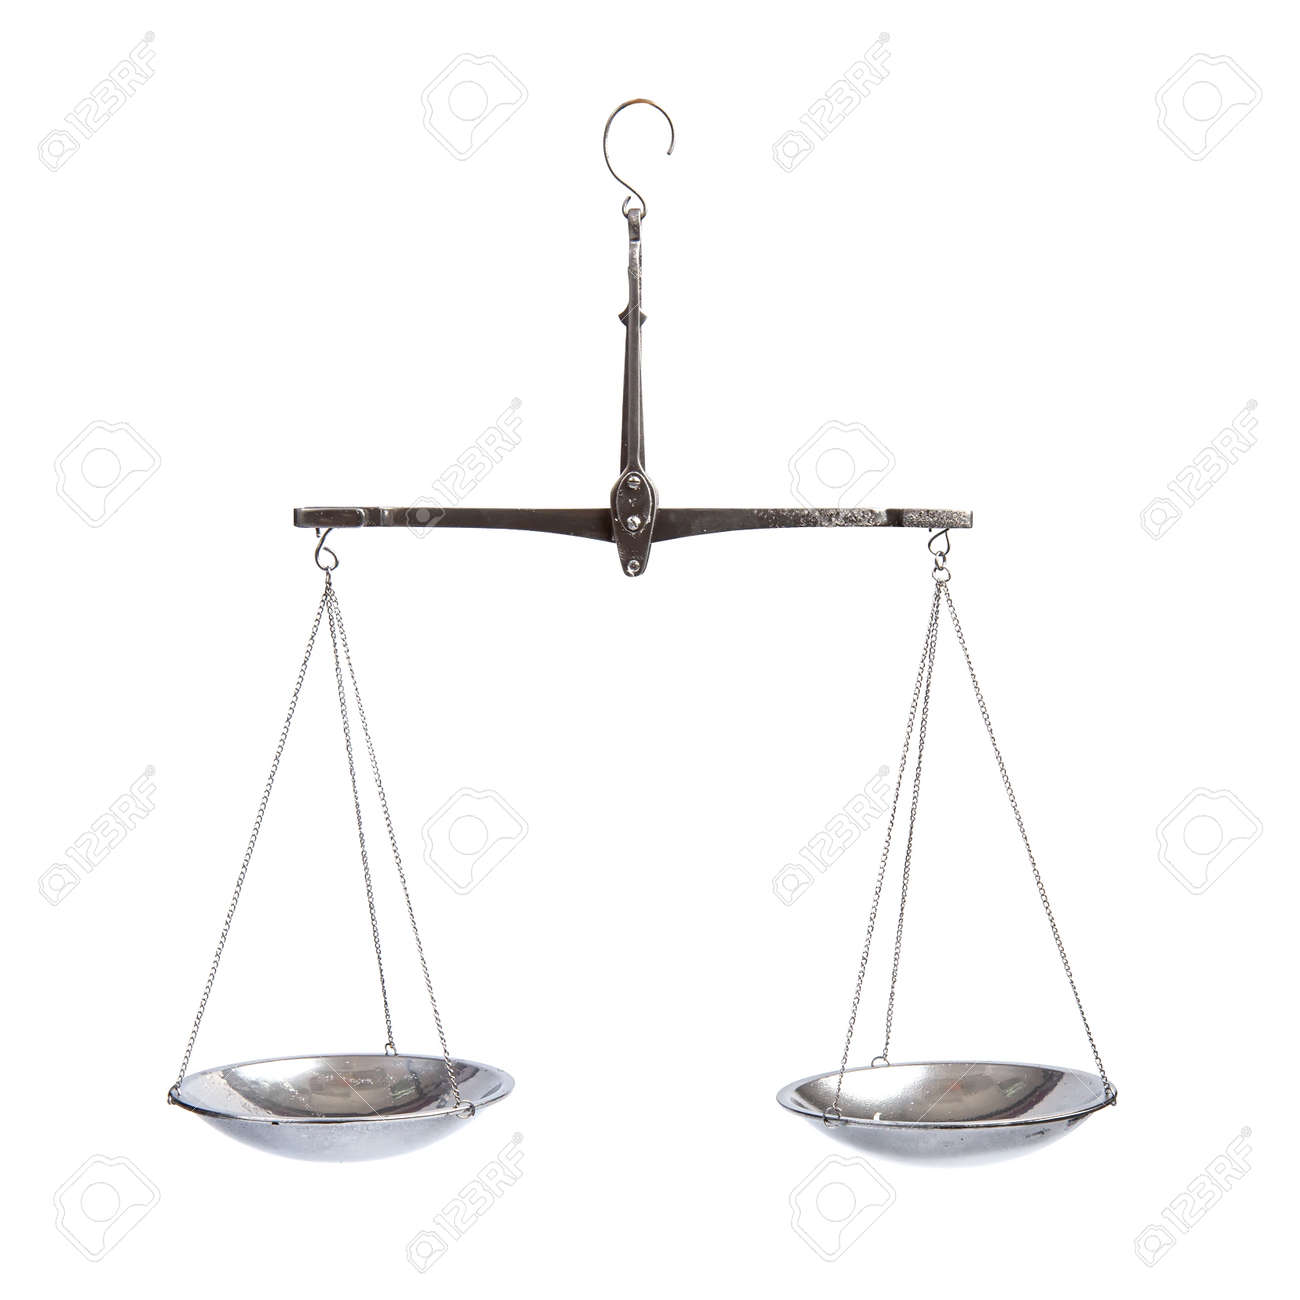 Old classic silver equal-arm scales with empty bowls on a chain in equilibrium position - 169106615